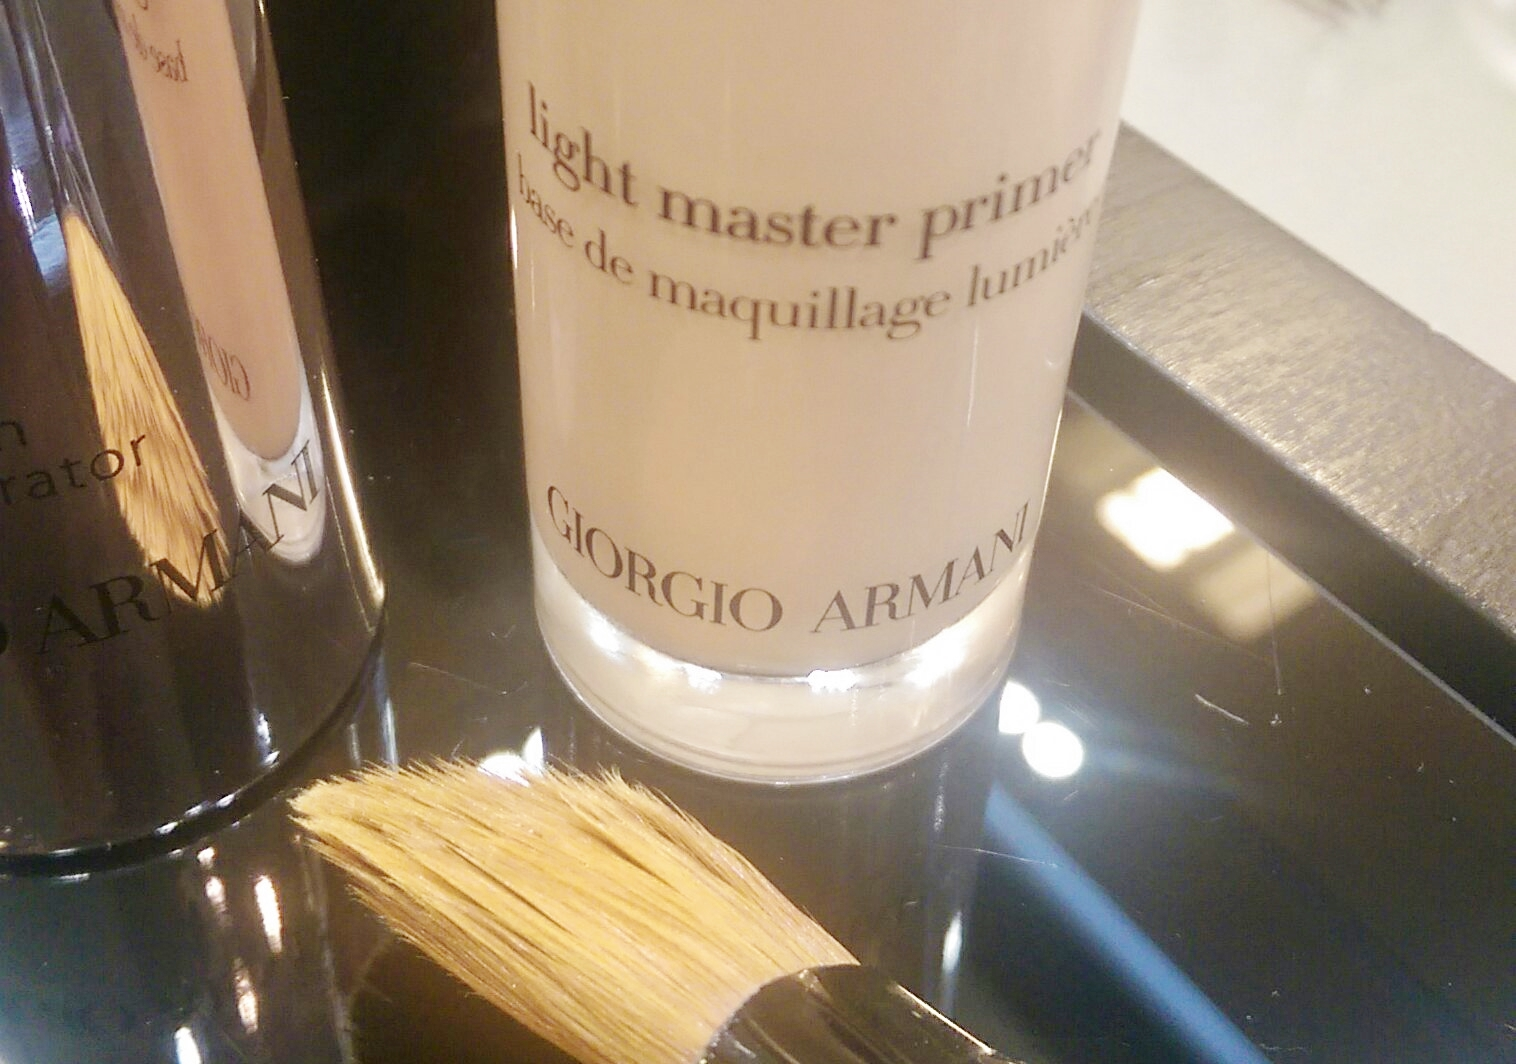 Giorgio Armani Light Master Makeup Primer